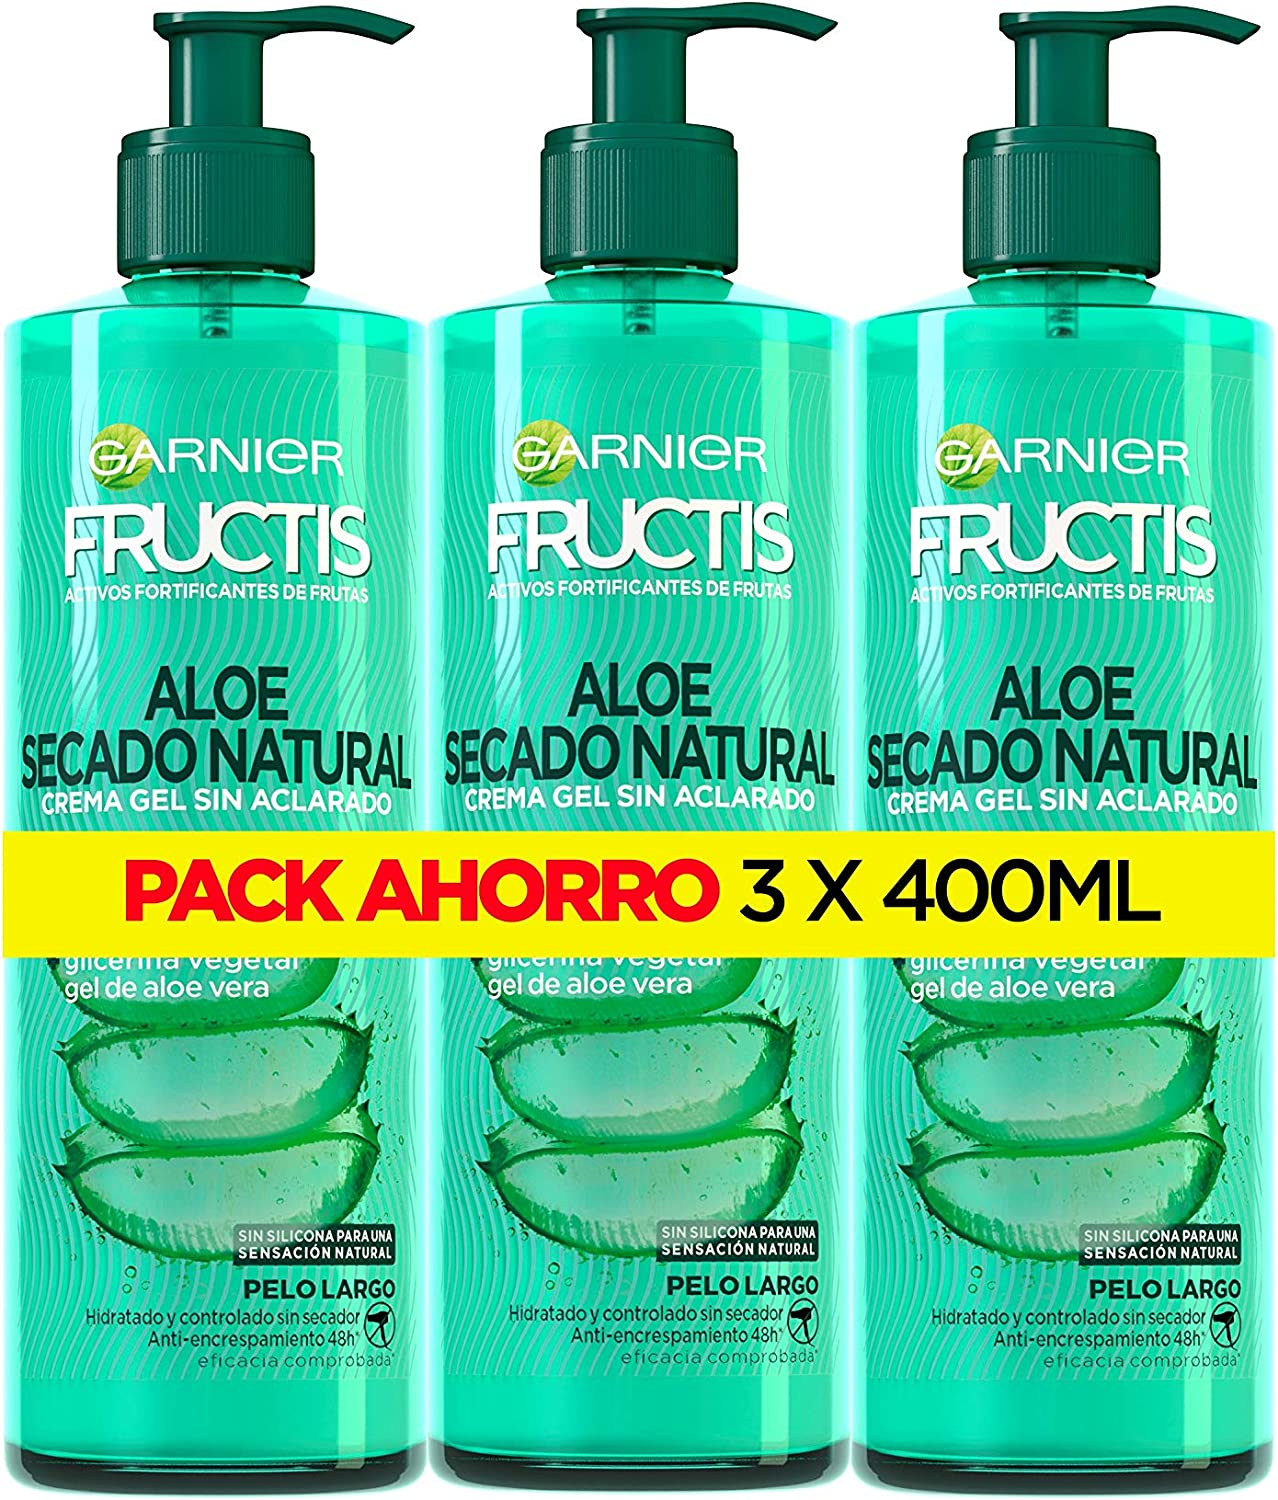 Garnier Fructis Aloe Secado al Aire Tratamiento Capilar Pelo Normal, Largo, pack de 3 (3 x 400 ml)